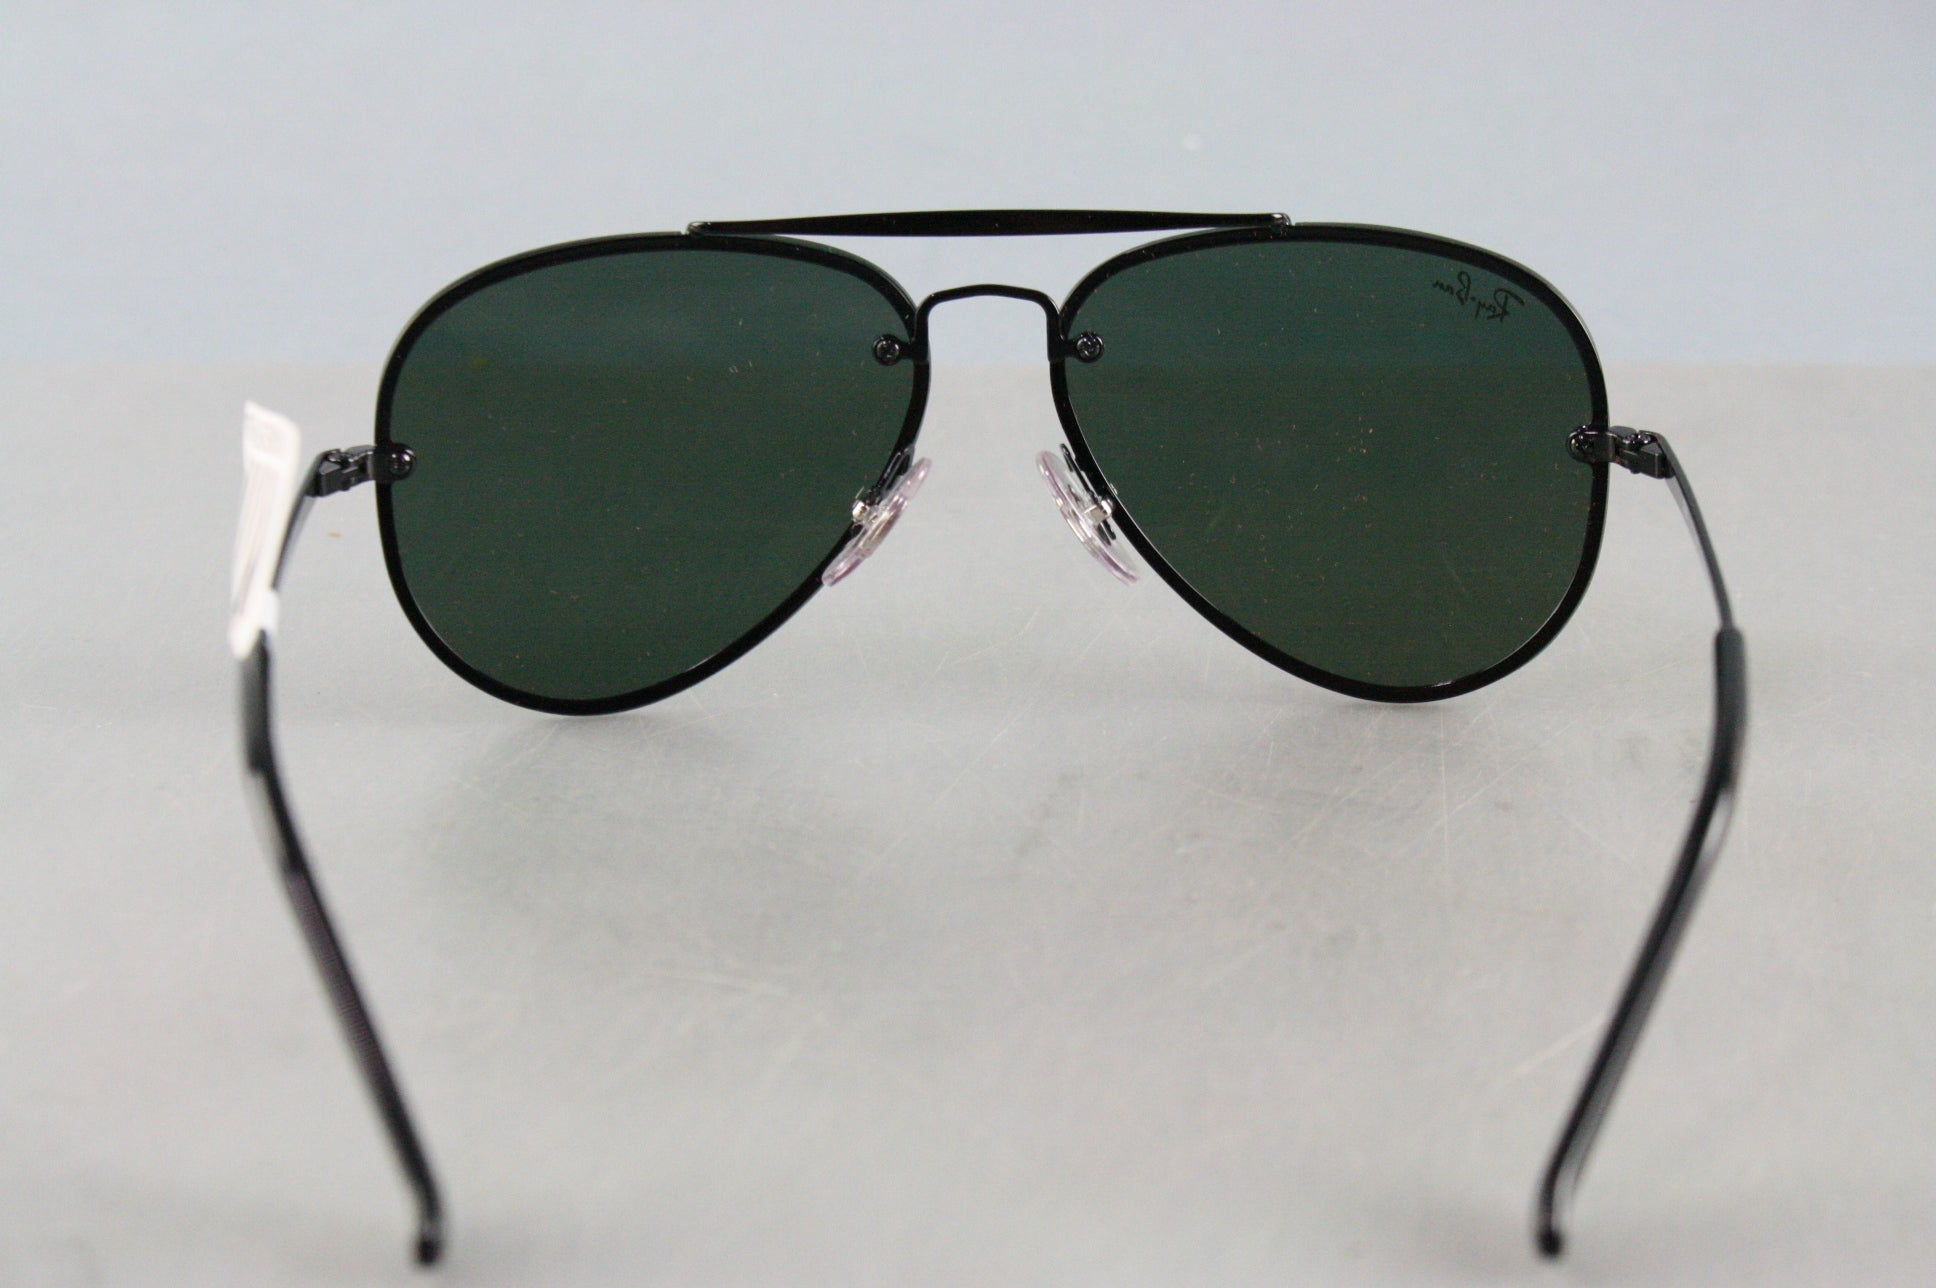 NEW Authentic Ray Ban Sunglasses RJ9548SN 200/11 Gunmetal Grey Grad Lens 54mm